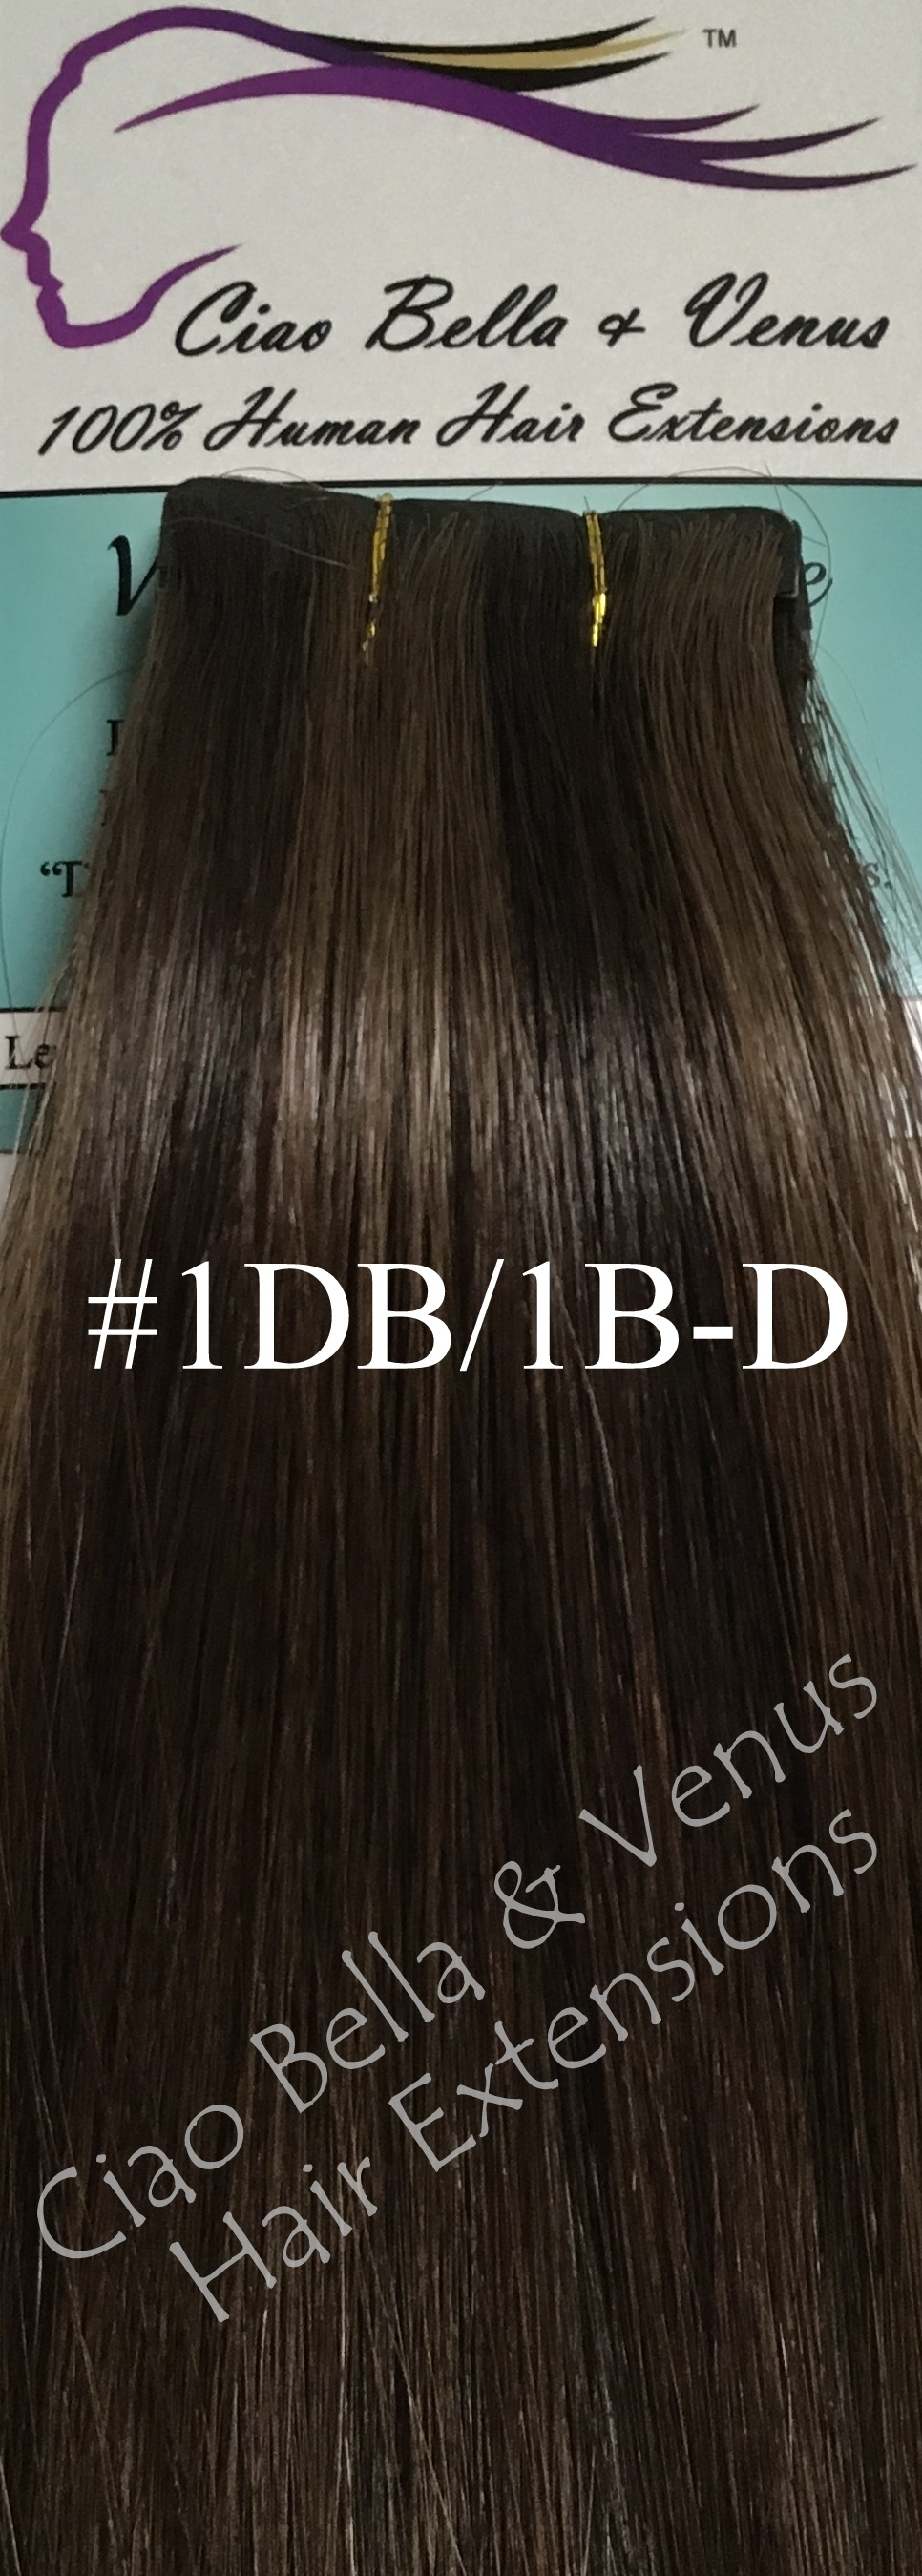 Quotnewquot Invisible Tape In Hair Extensions 20 Inch 1db1b D